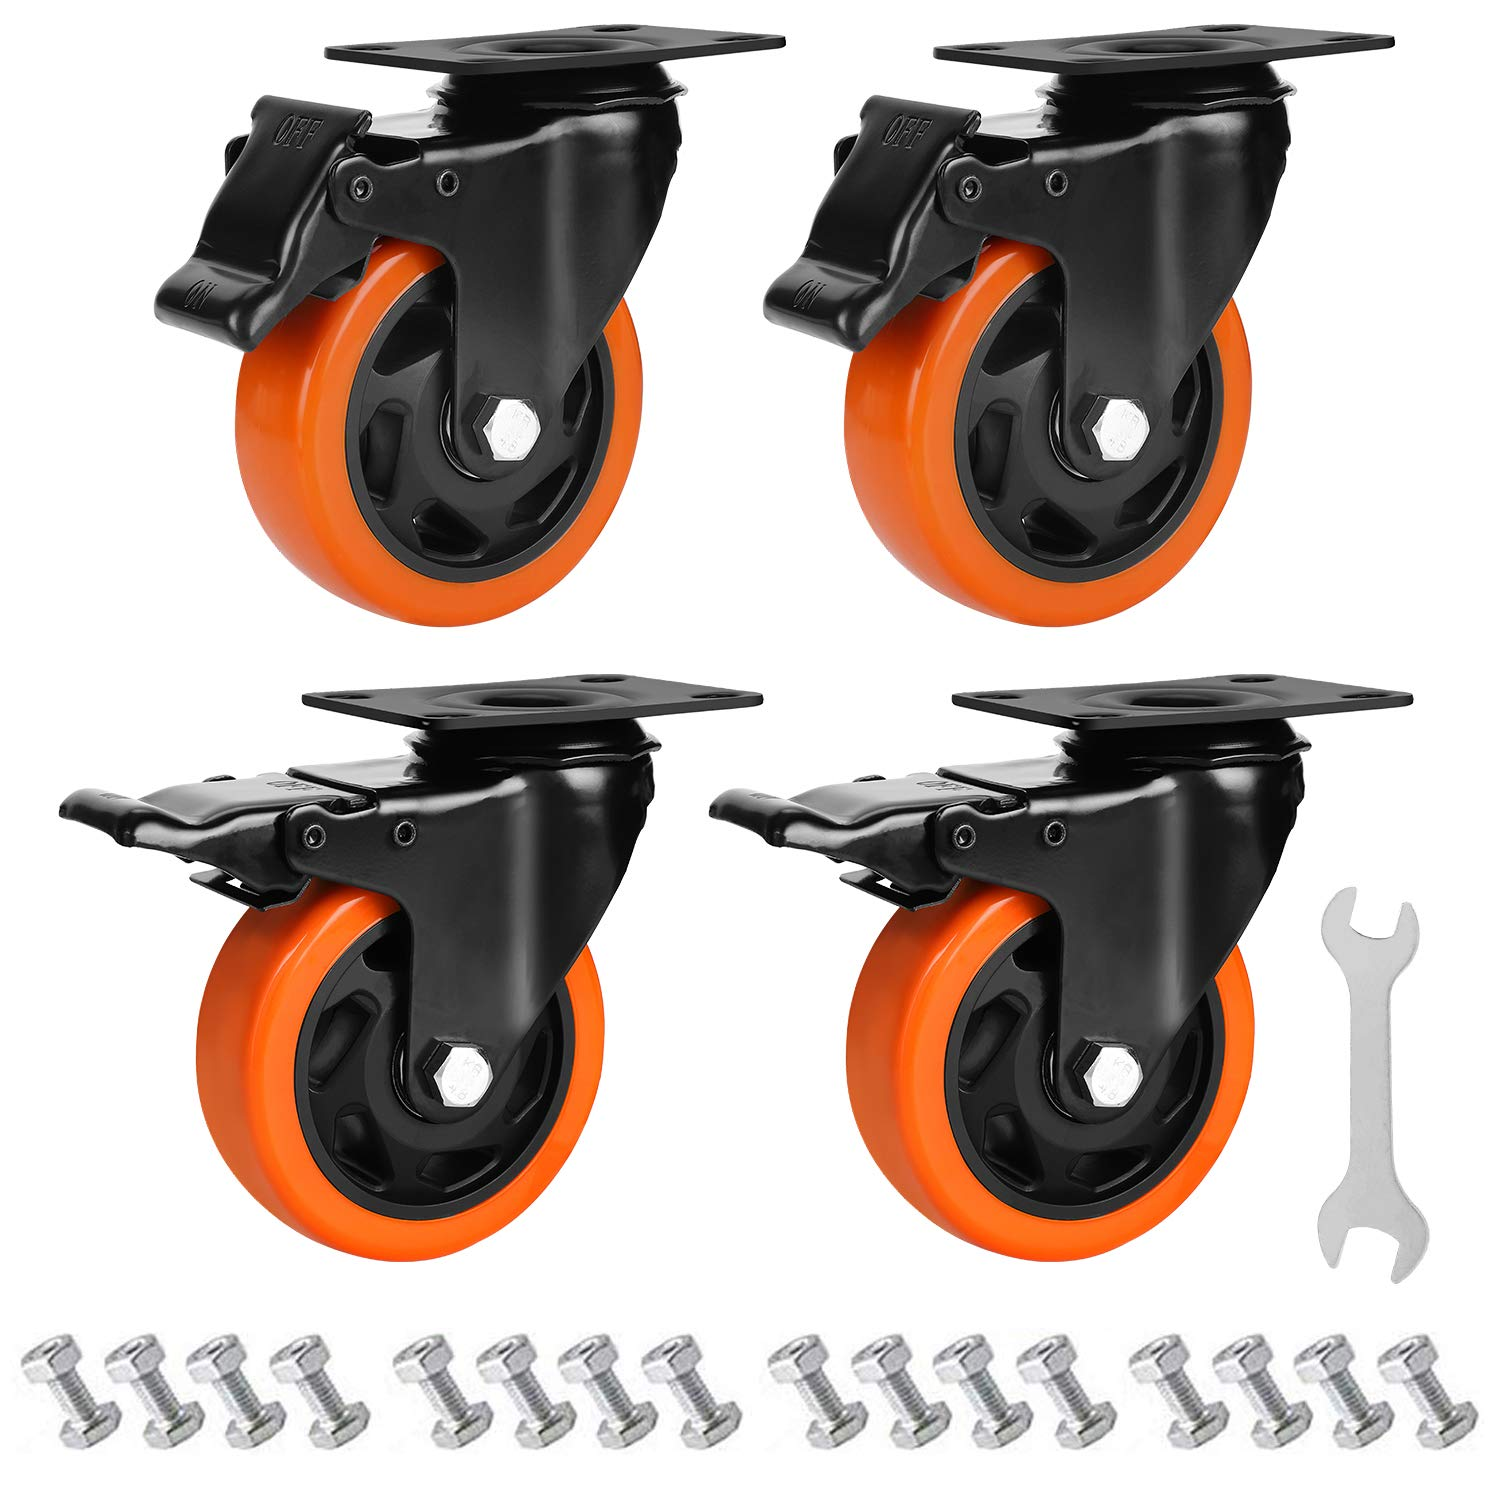 GloEra 4 inch Swivel Caster Wheels with Screws Heavy Duty 1200 LBS Capacity with Safety Dual Caster, 4 Pack All with Brake No Noise Lockable Wheels (Free Screws and Spanner)